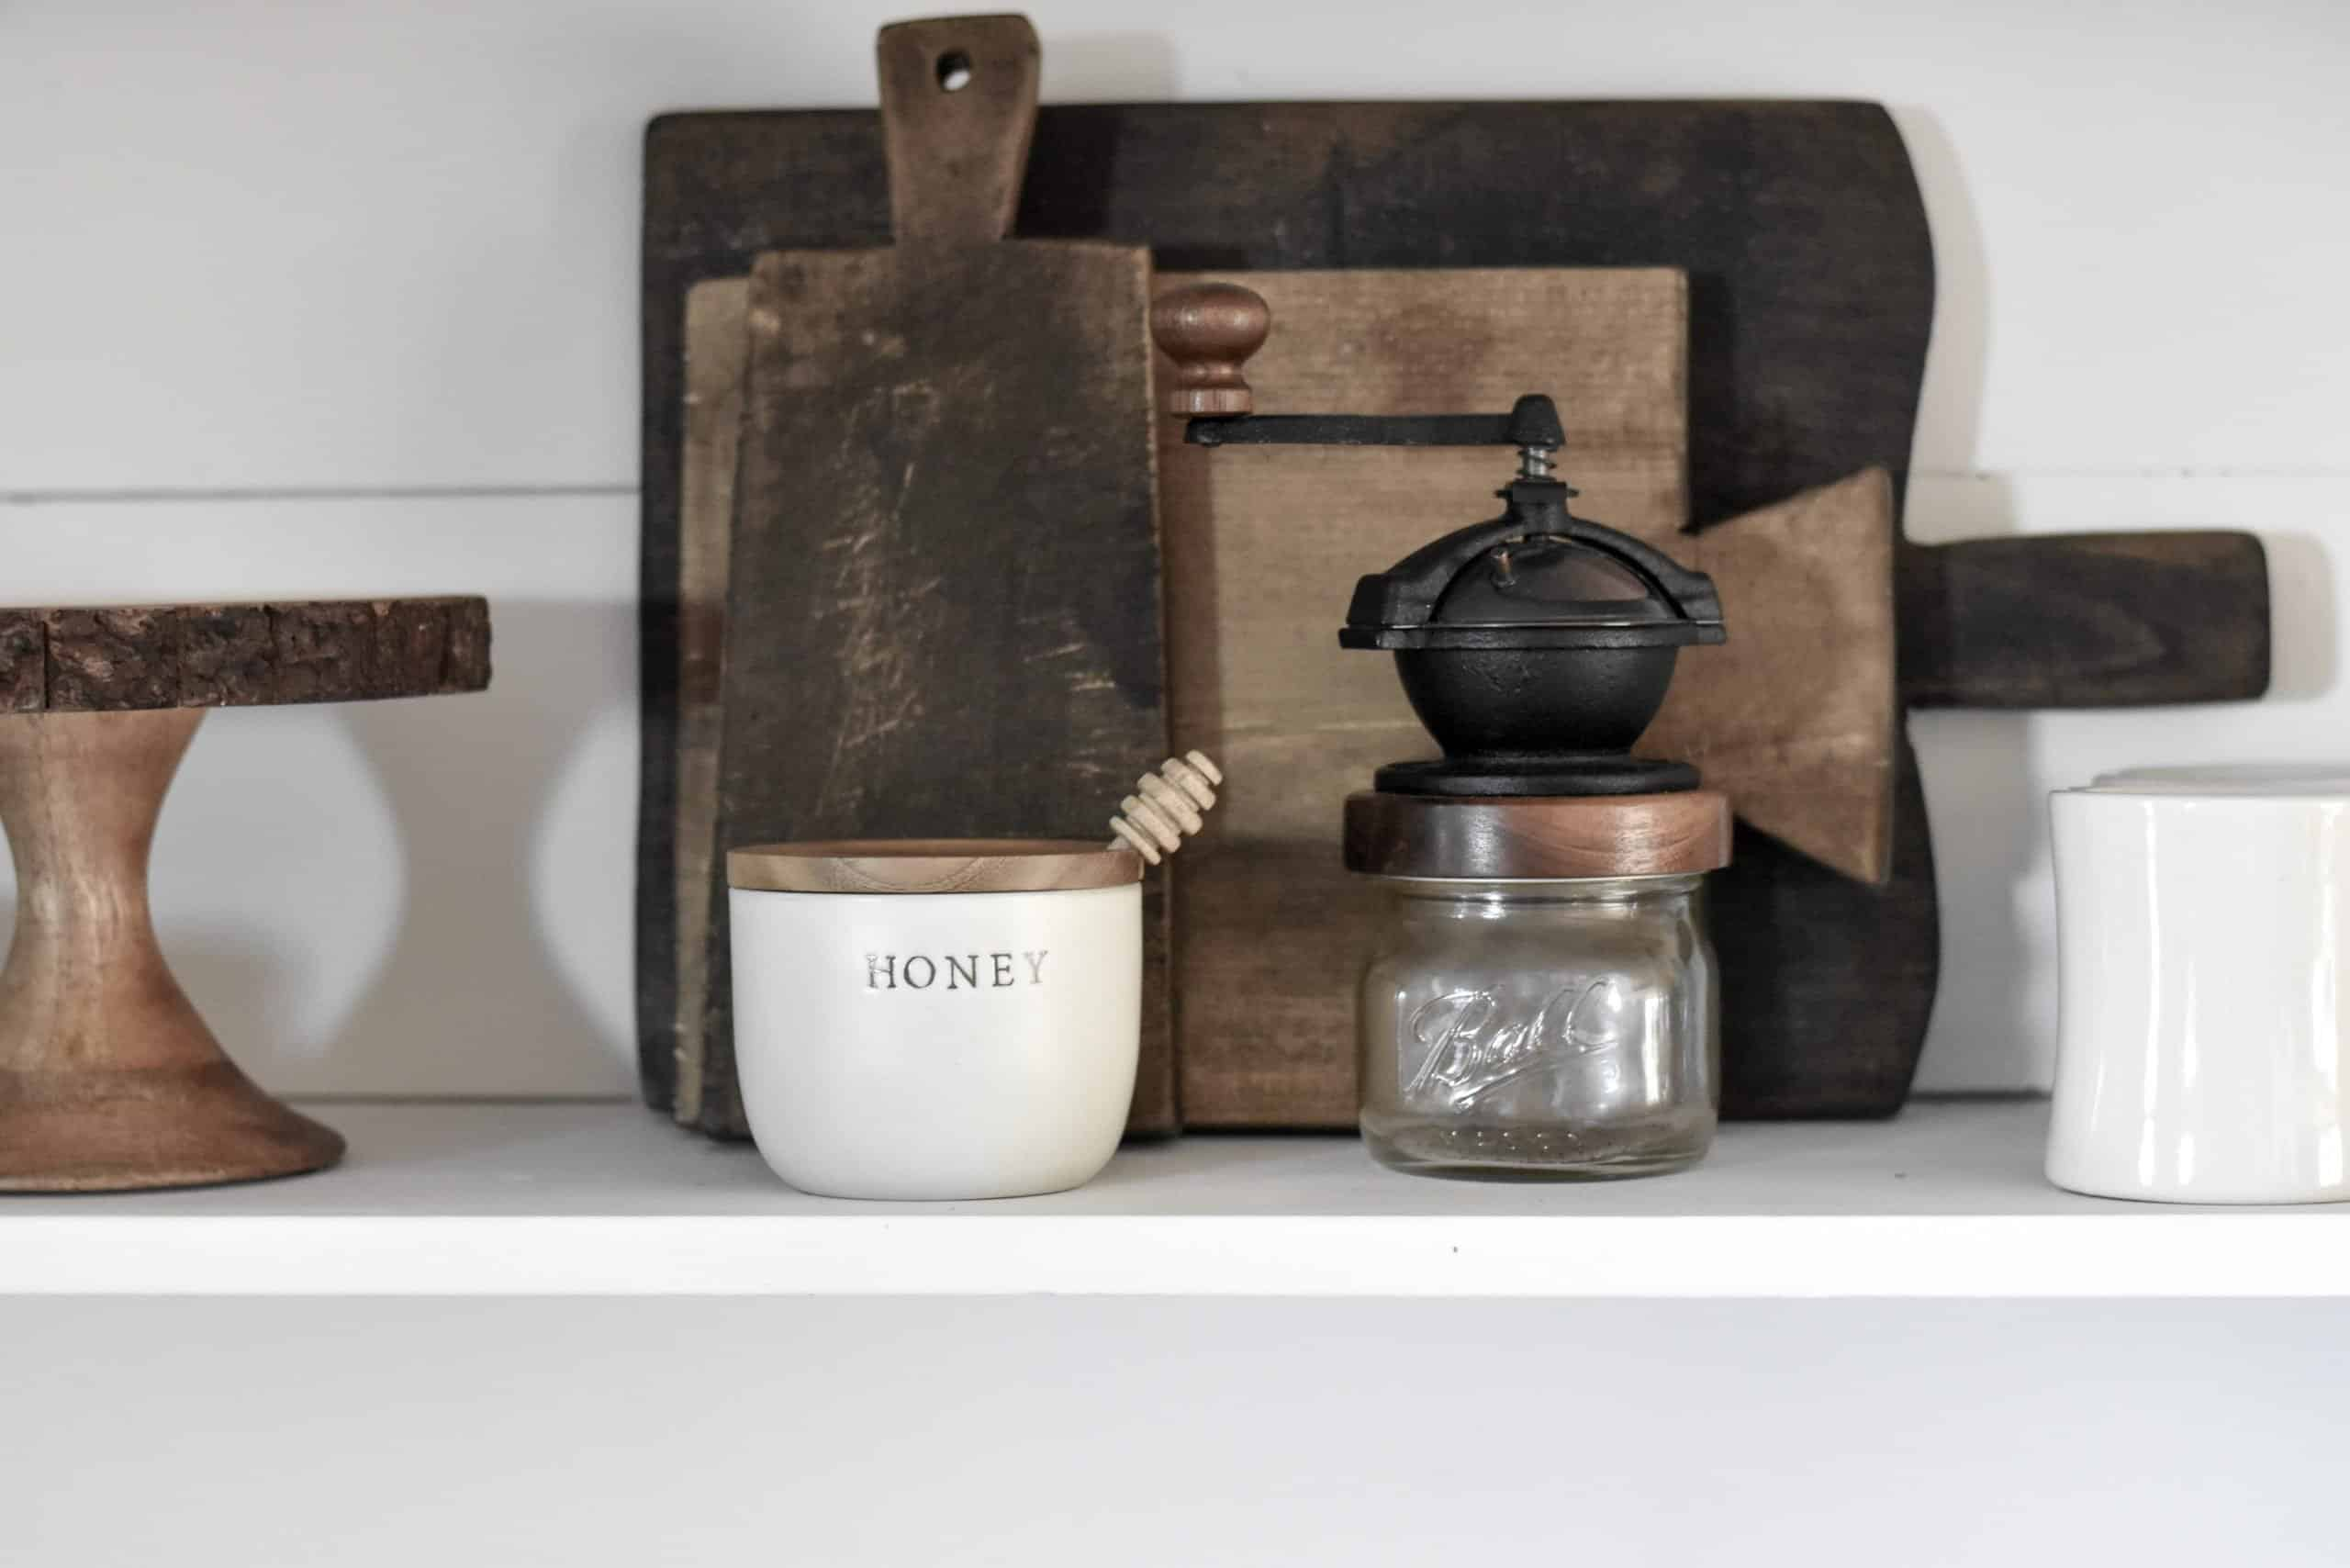 DIY Cutting Boards on Farmhouse Style Rustic Industrial Shelves